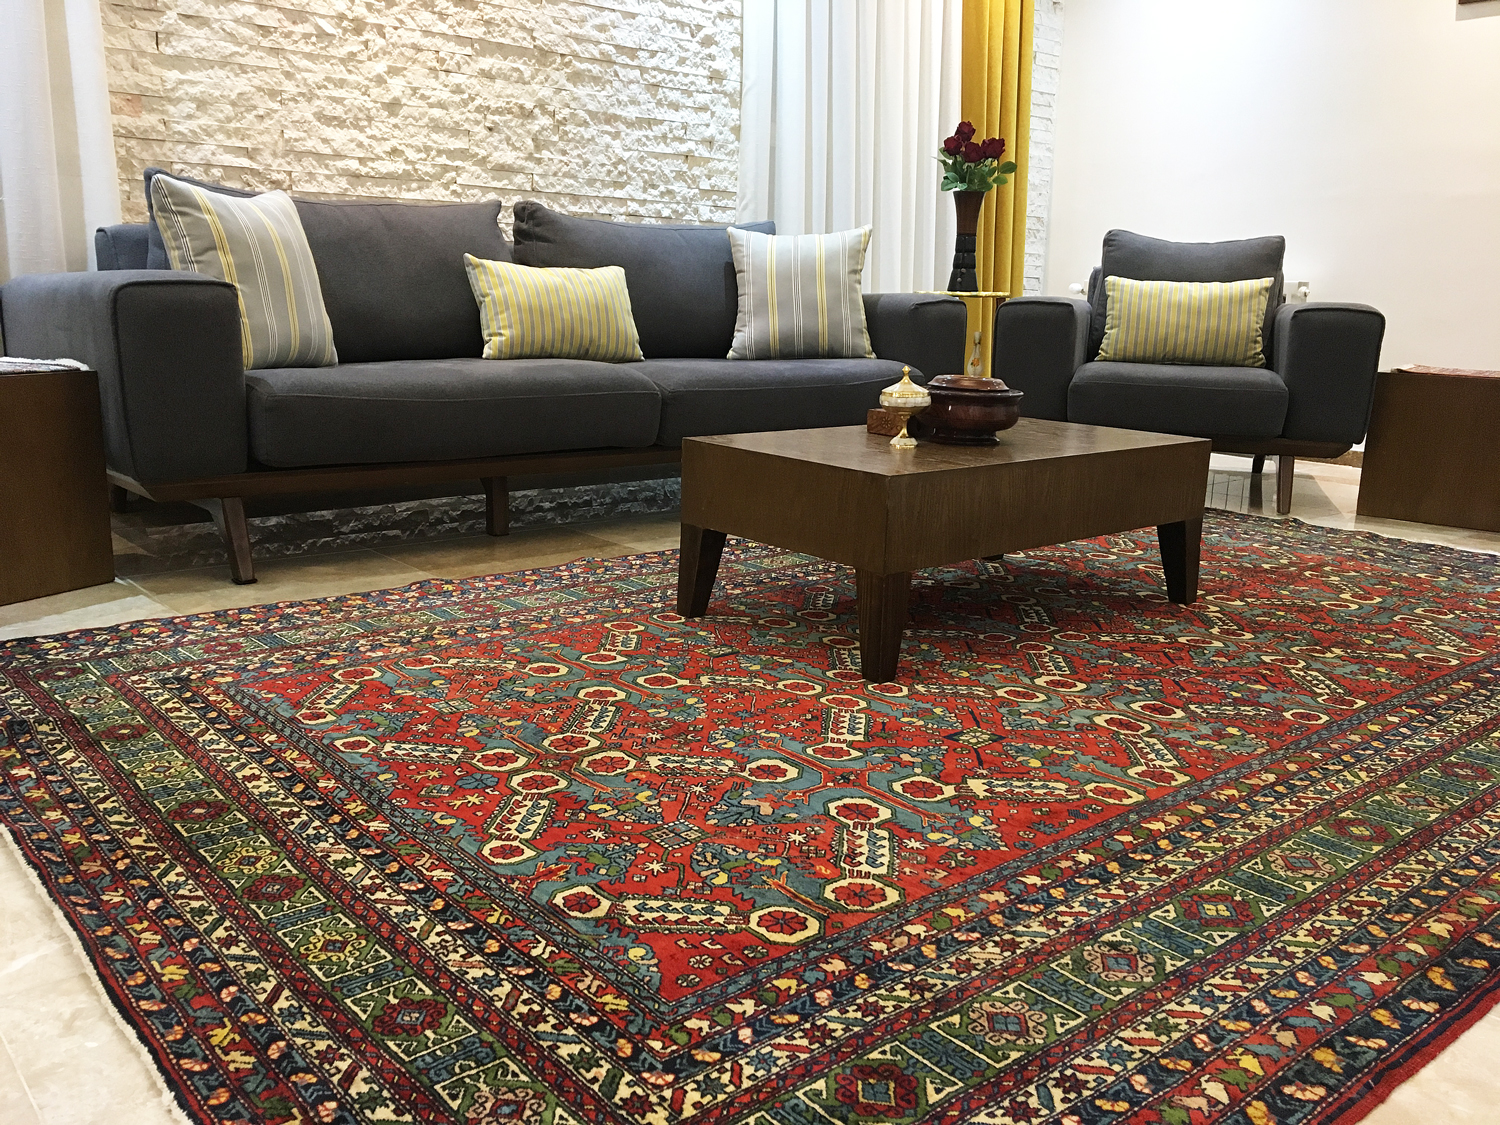 Our Rug Collection - Browse our online shop and buy with confidence or visit us in store at our showroom in Sevenoaks. With in situ viewing available why not take a look now.